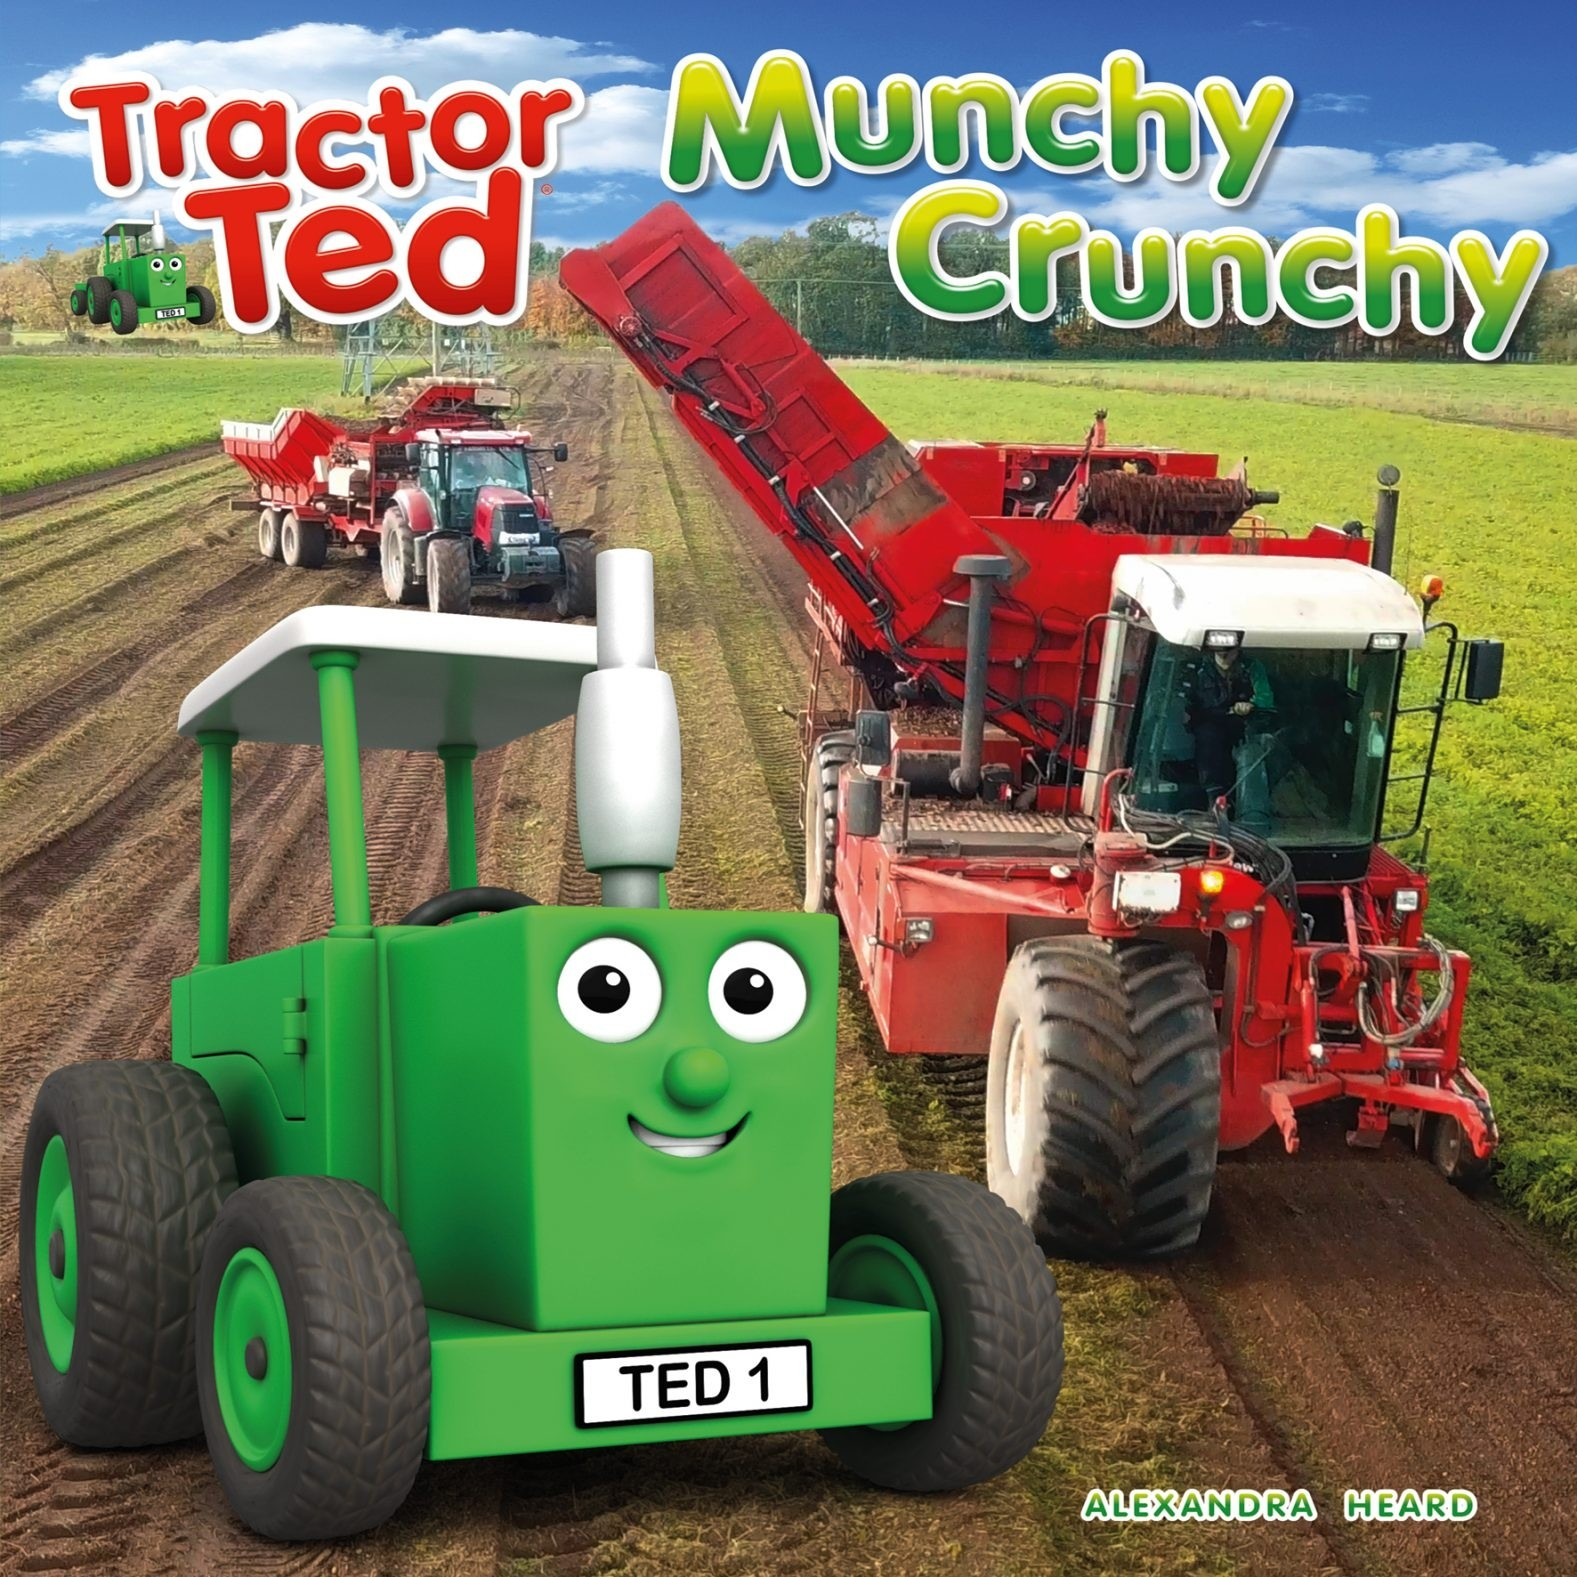 Tractor Ted Book  - Munchy Crunchy